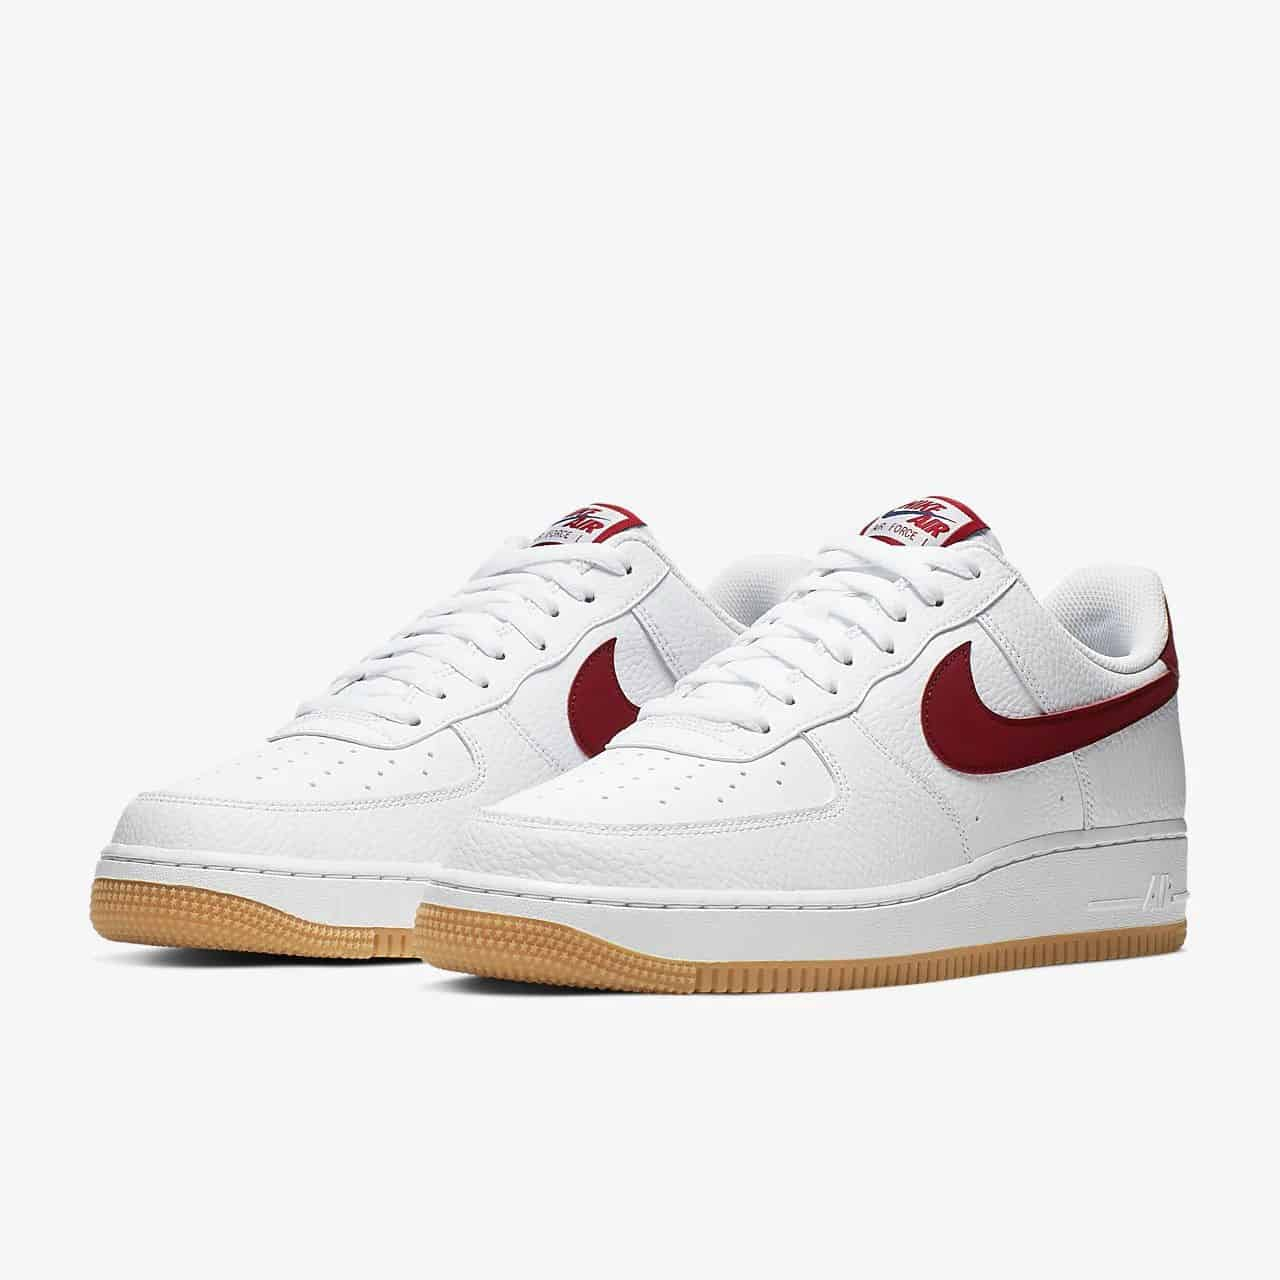 ADIDASI ORIGINALI NIKE AIR FORCE 1'07 2 - CI0057 101